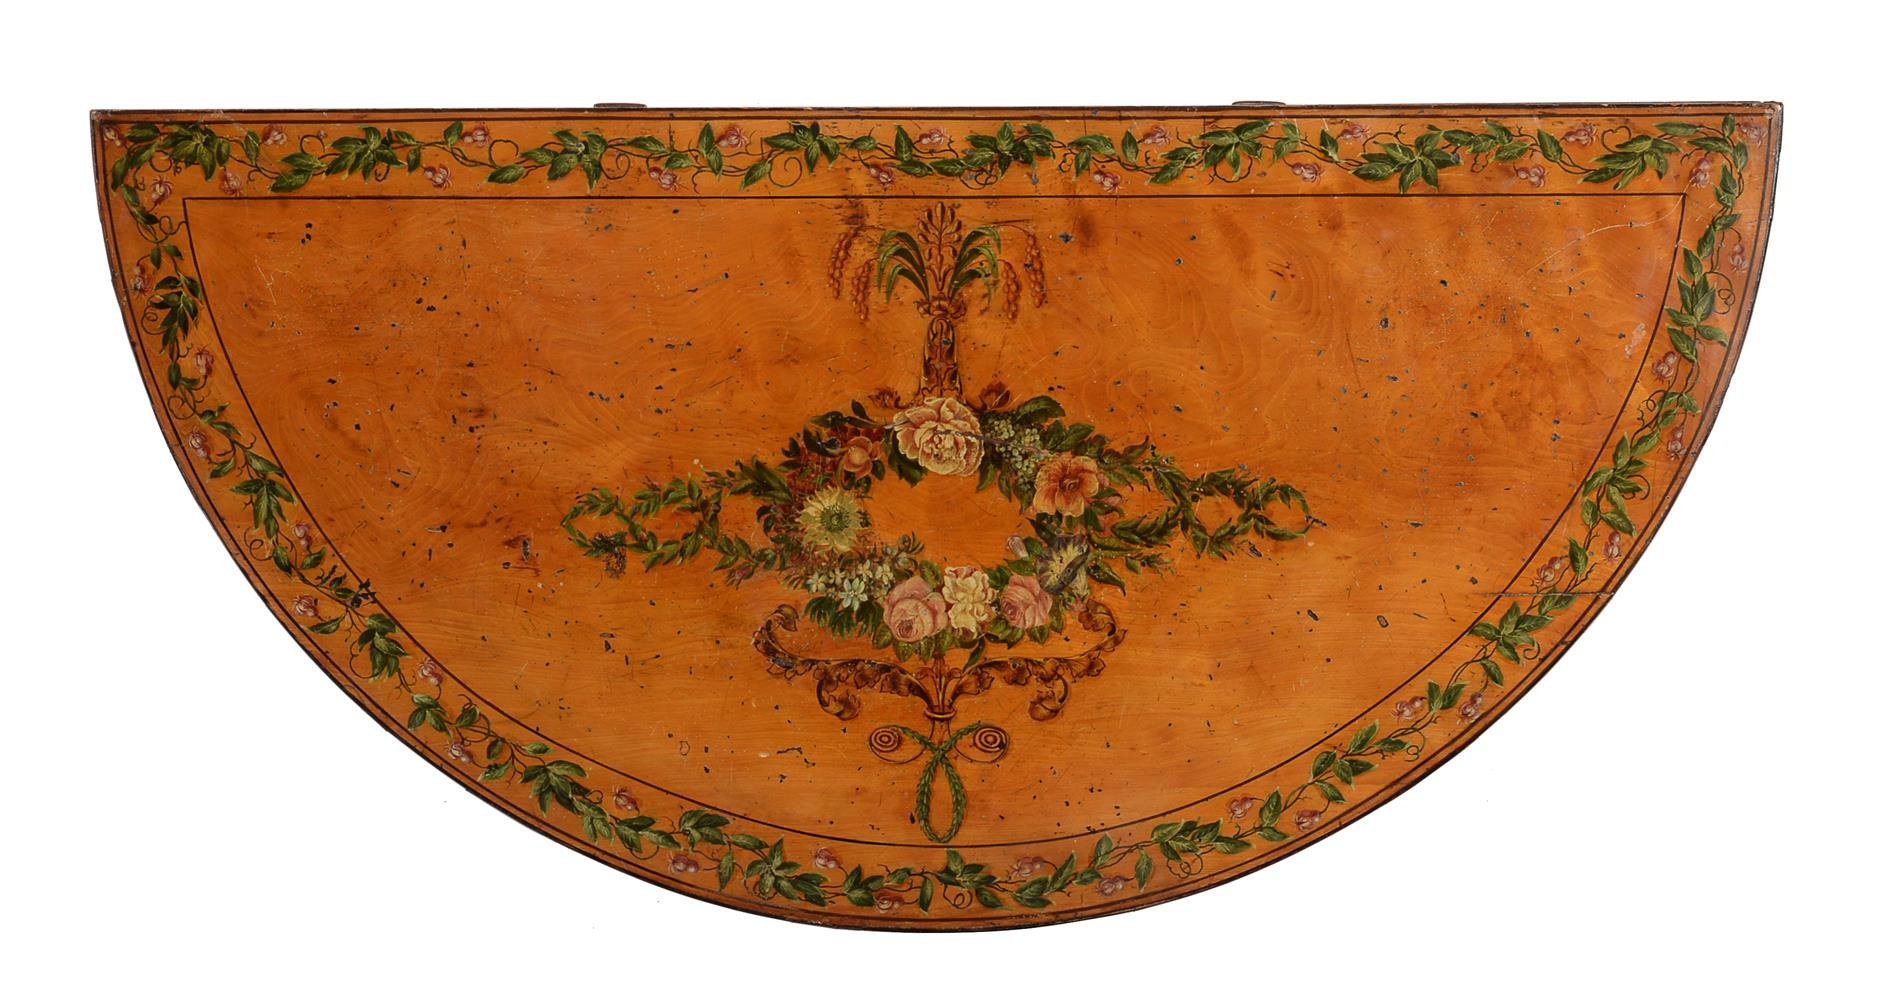 A PAIR OF GEORGE III DECORATED SATINWOOD CARD TABLES, CIRCA 1810 - Image 8 of 8